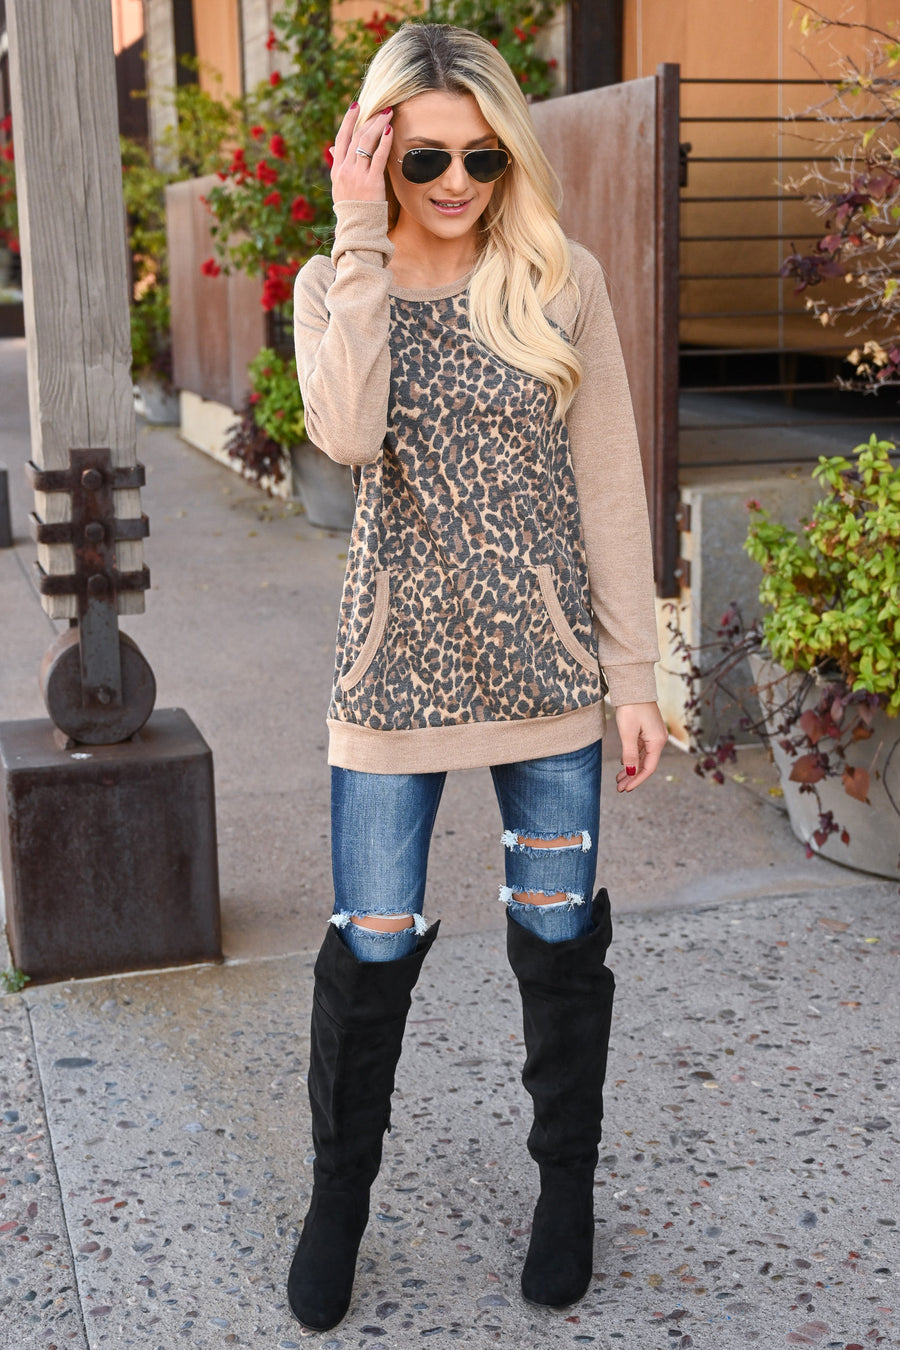 Coffee Run Leopard Top - Latte women's animal print raglan with kangaroo pocket, Closet Candy Boutique 1